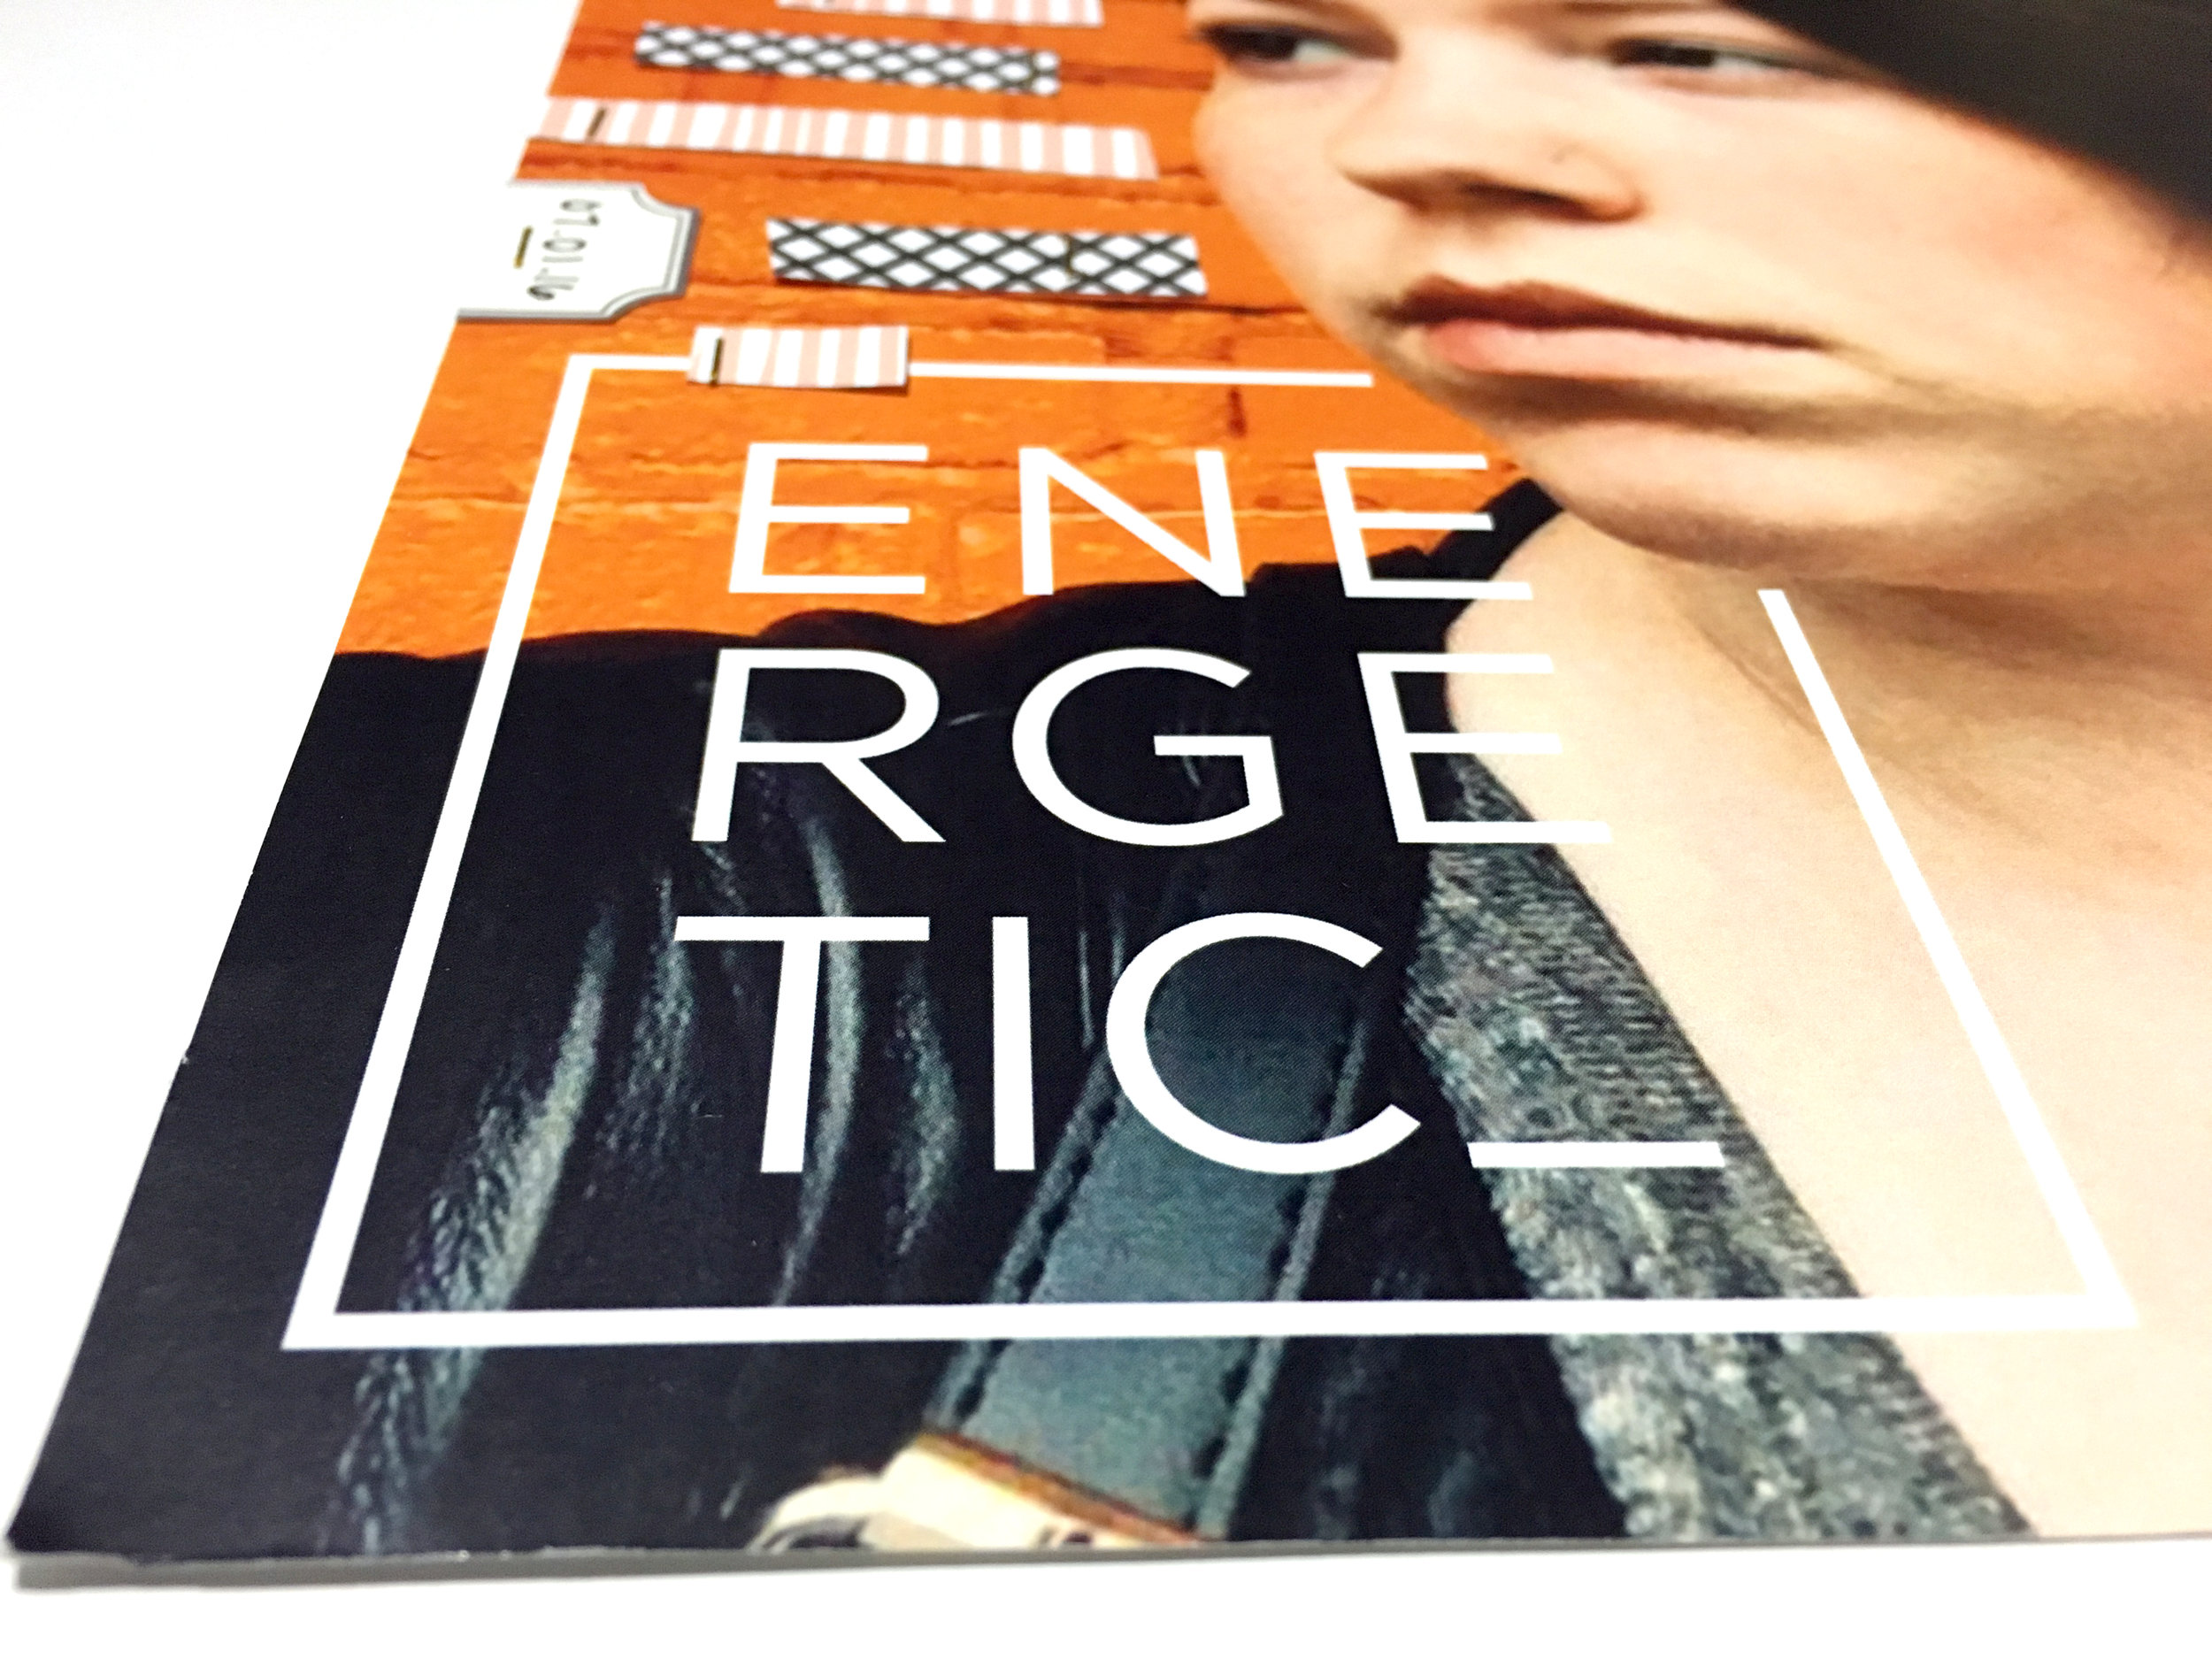 'Energetic' Scrapbook Layout | The Paper Curator